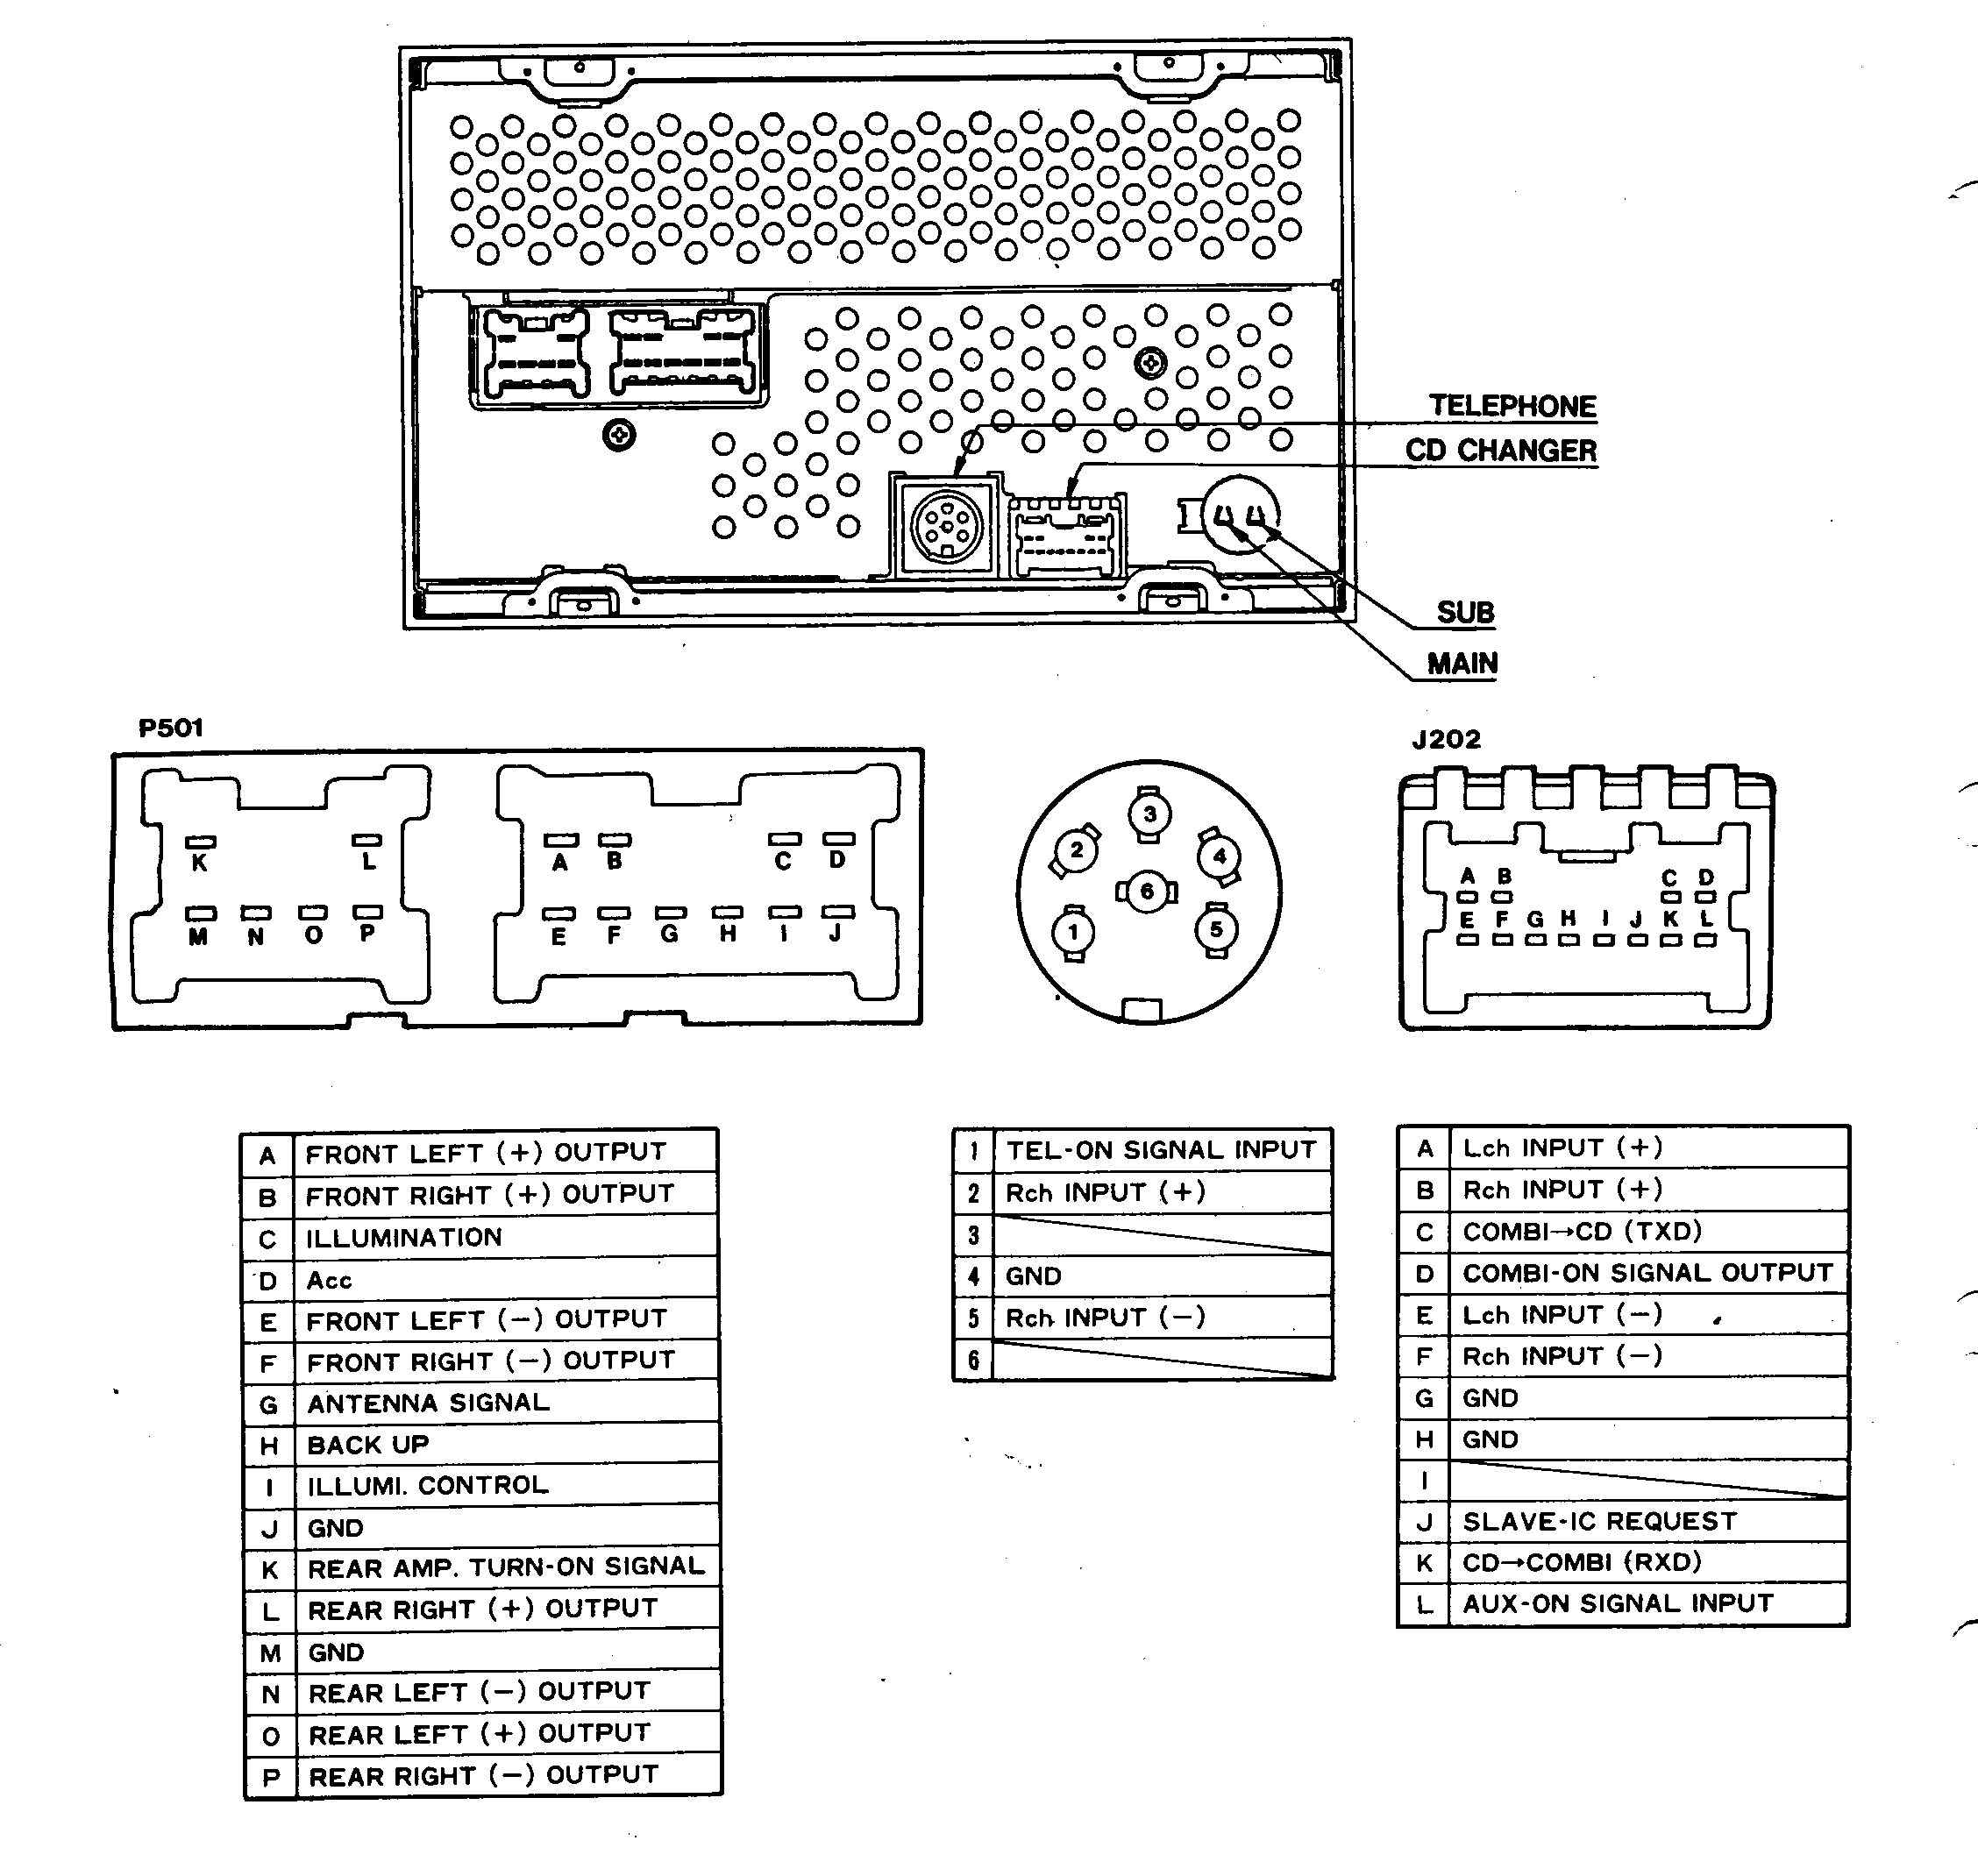 fuse panel diagram for 1992 nissan sentra wiring library Nissan Sentra Dashboard Diagram 1994 nissan altima fuse box diagram wiring diagrams box 2000 nissan pathfinder fuse diagram 1993 nissan